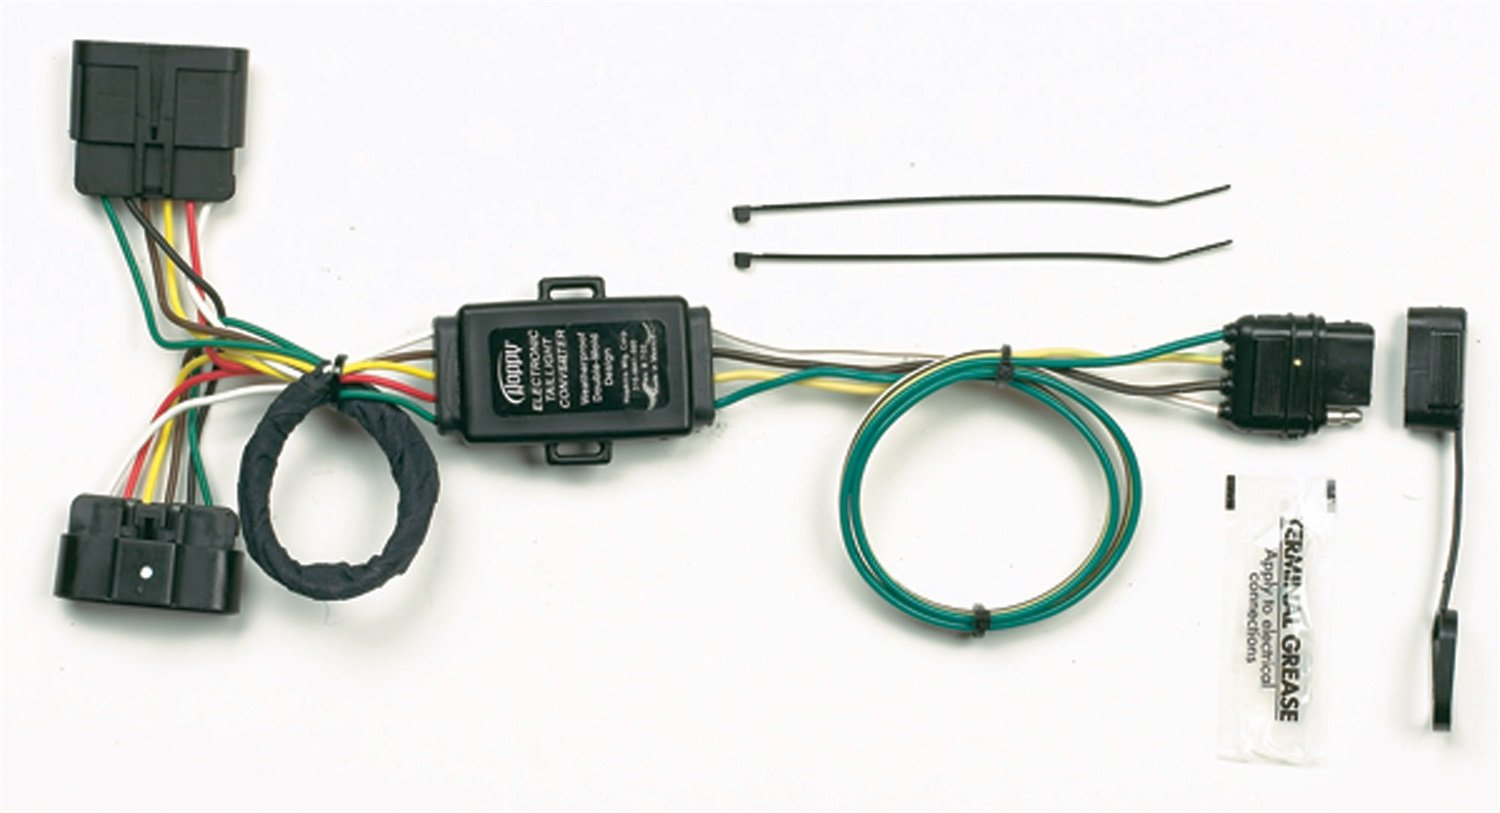 61exX8uloML._SL1500_ amazon com hopkins 41165 plug in simple vehicle wiring kit 2006 chevy colorado trailer wiring harness at soozxer.org